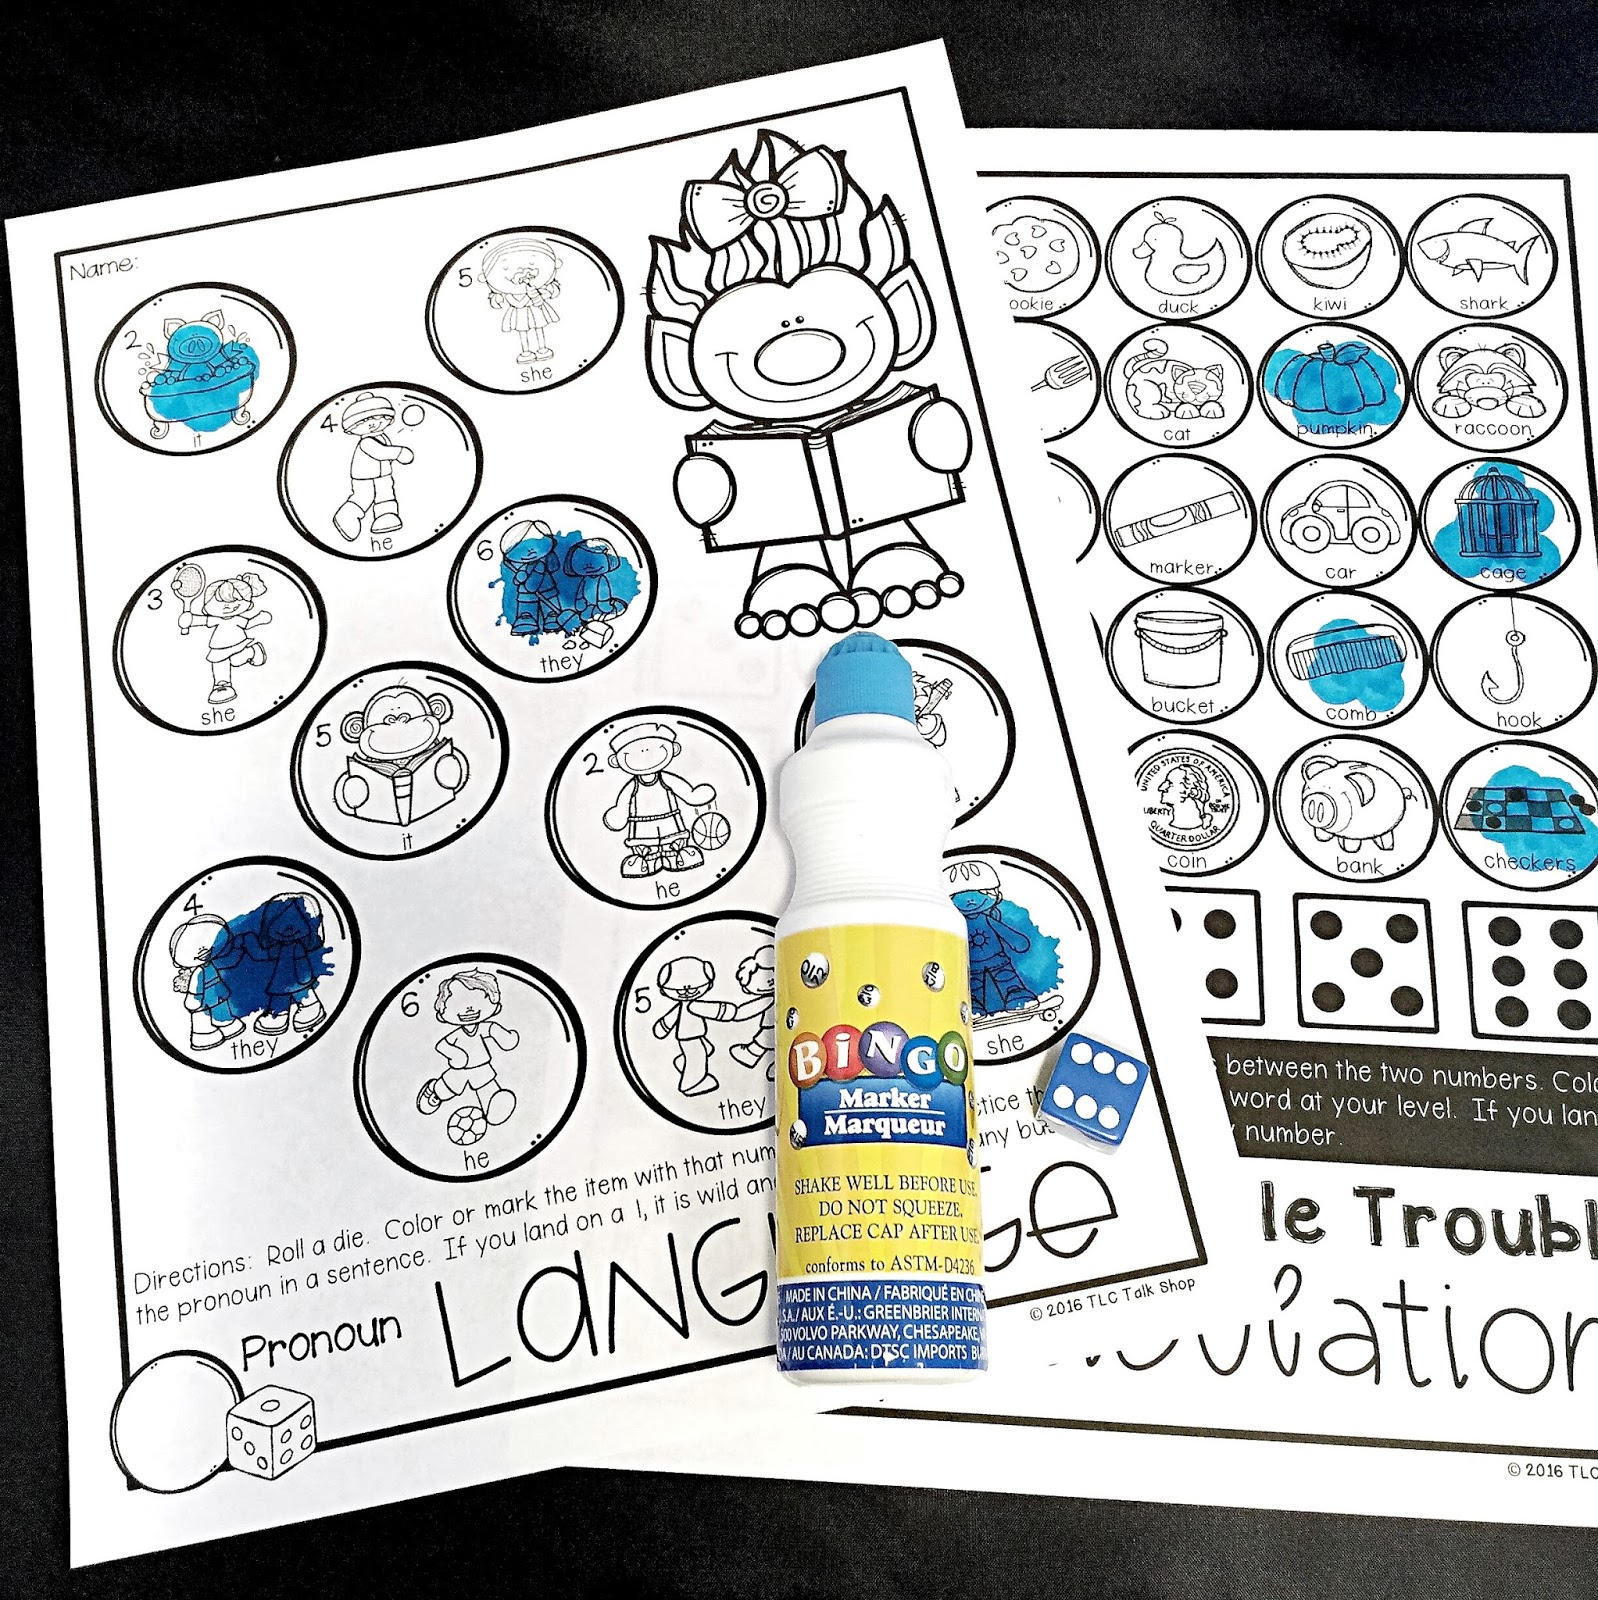 S blend coloring pages - To Wrap Up My Week I Will Also Be Using These Spooktacular New Stories That I Blogged About Earlier This Week With The Classes That I Have Not Yet Used